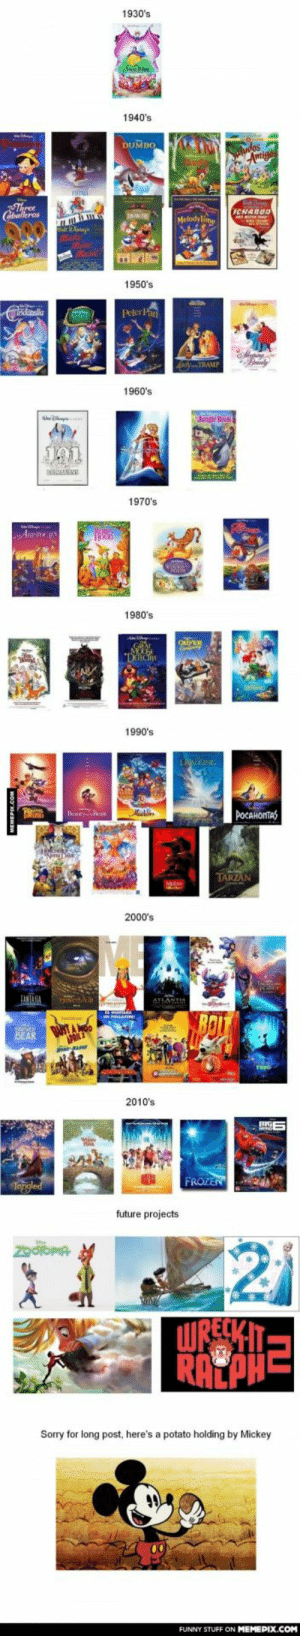 """What's the best Disney decade ?omg-humor.tumblr.com: 1930's  1940's  DUMBO  Sulndas  Amigas  Three  Caballeros  ICHABUD  Melodylime  ake  ine  Music  1950's  PeterPan  Caltala  Peterlan  boping  4 TRAMP  1960's  hngle Hock  1970's  ARSTUC  HOOD  1980's  QUYER  """"DiECiVE  1990's  LNKING  POCAHONTAS  Alachlen  BeauryBese  РосАнопТа3  TARZAN  2000's  Ineantine  PLASET  FANTANA  ATLANTI  -allhen.  BOLT  UN PLLATRI  BUSTAO  APRIL 2  BEAR  FEEG  2010's  SIGE  FROZEN  Tepgled  future projects  ZooiOPIA  WRECKIT:  RATPHE  Sorry for long post, here's a potato holding by Mickey  FUNNY STUFF ON MEMEPIX.COM What's the best Disney decade ?omg-humor.tumblr.com"""